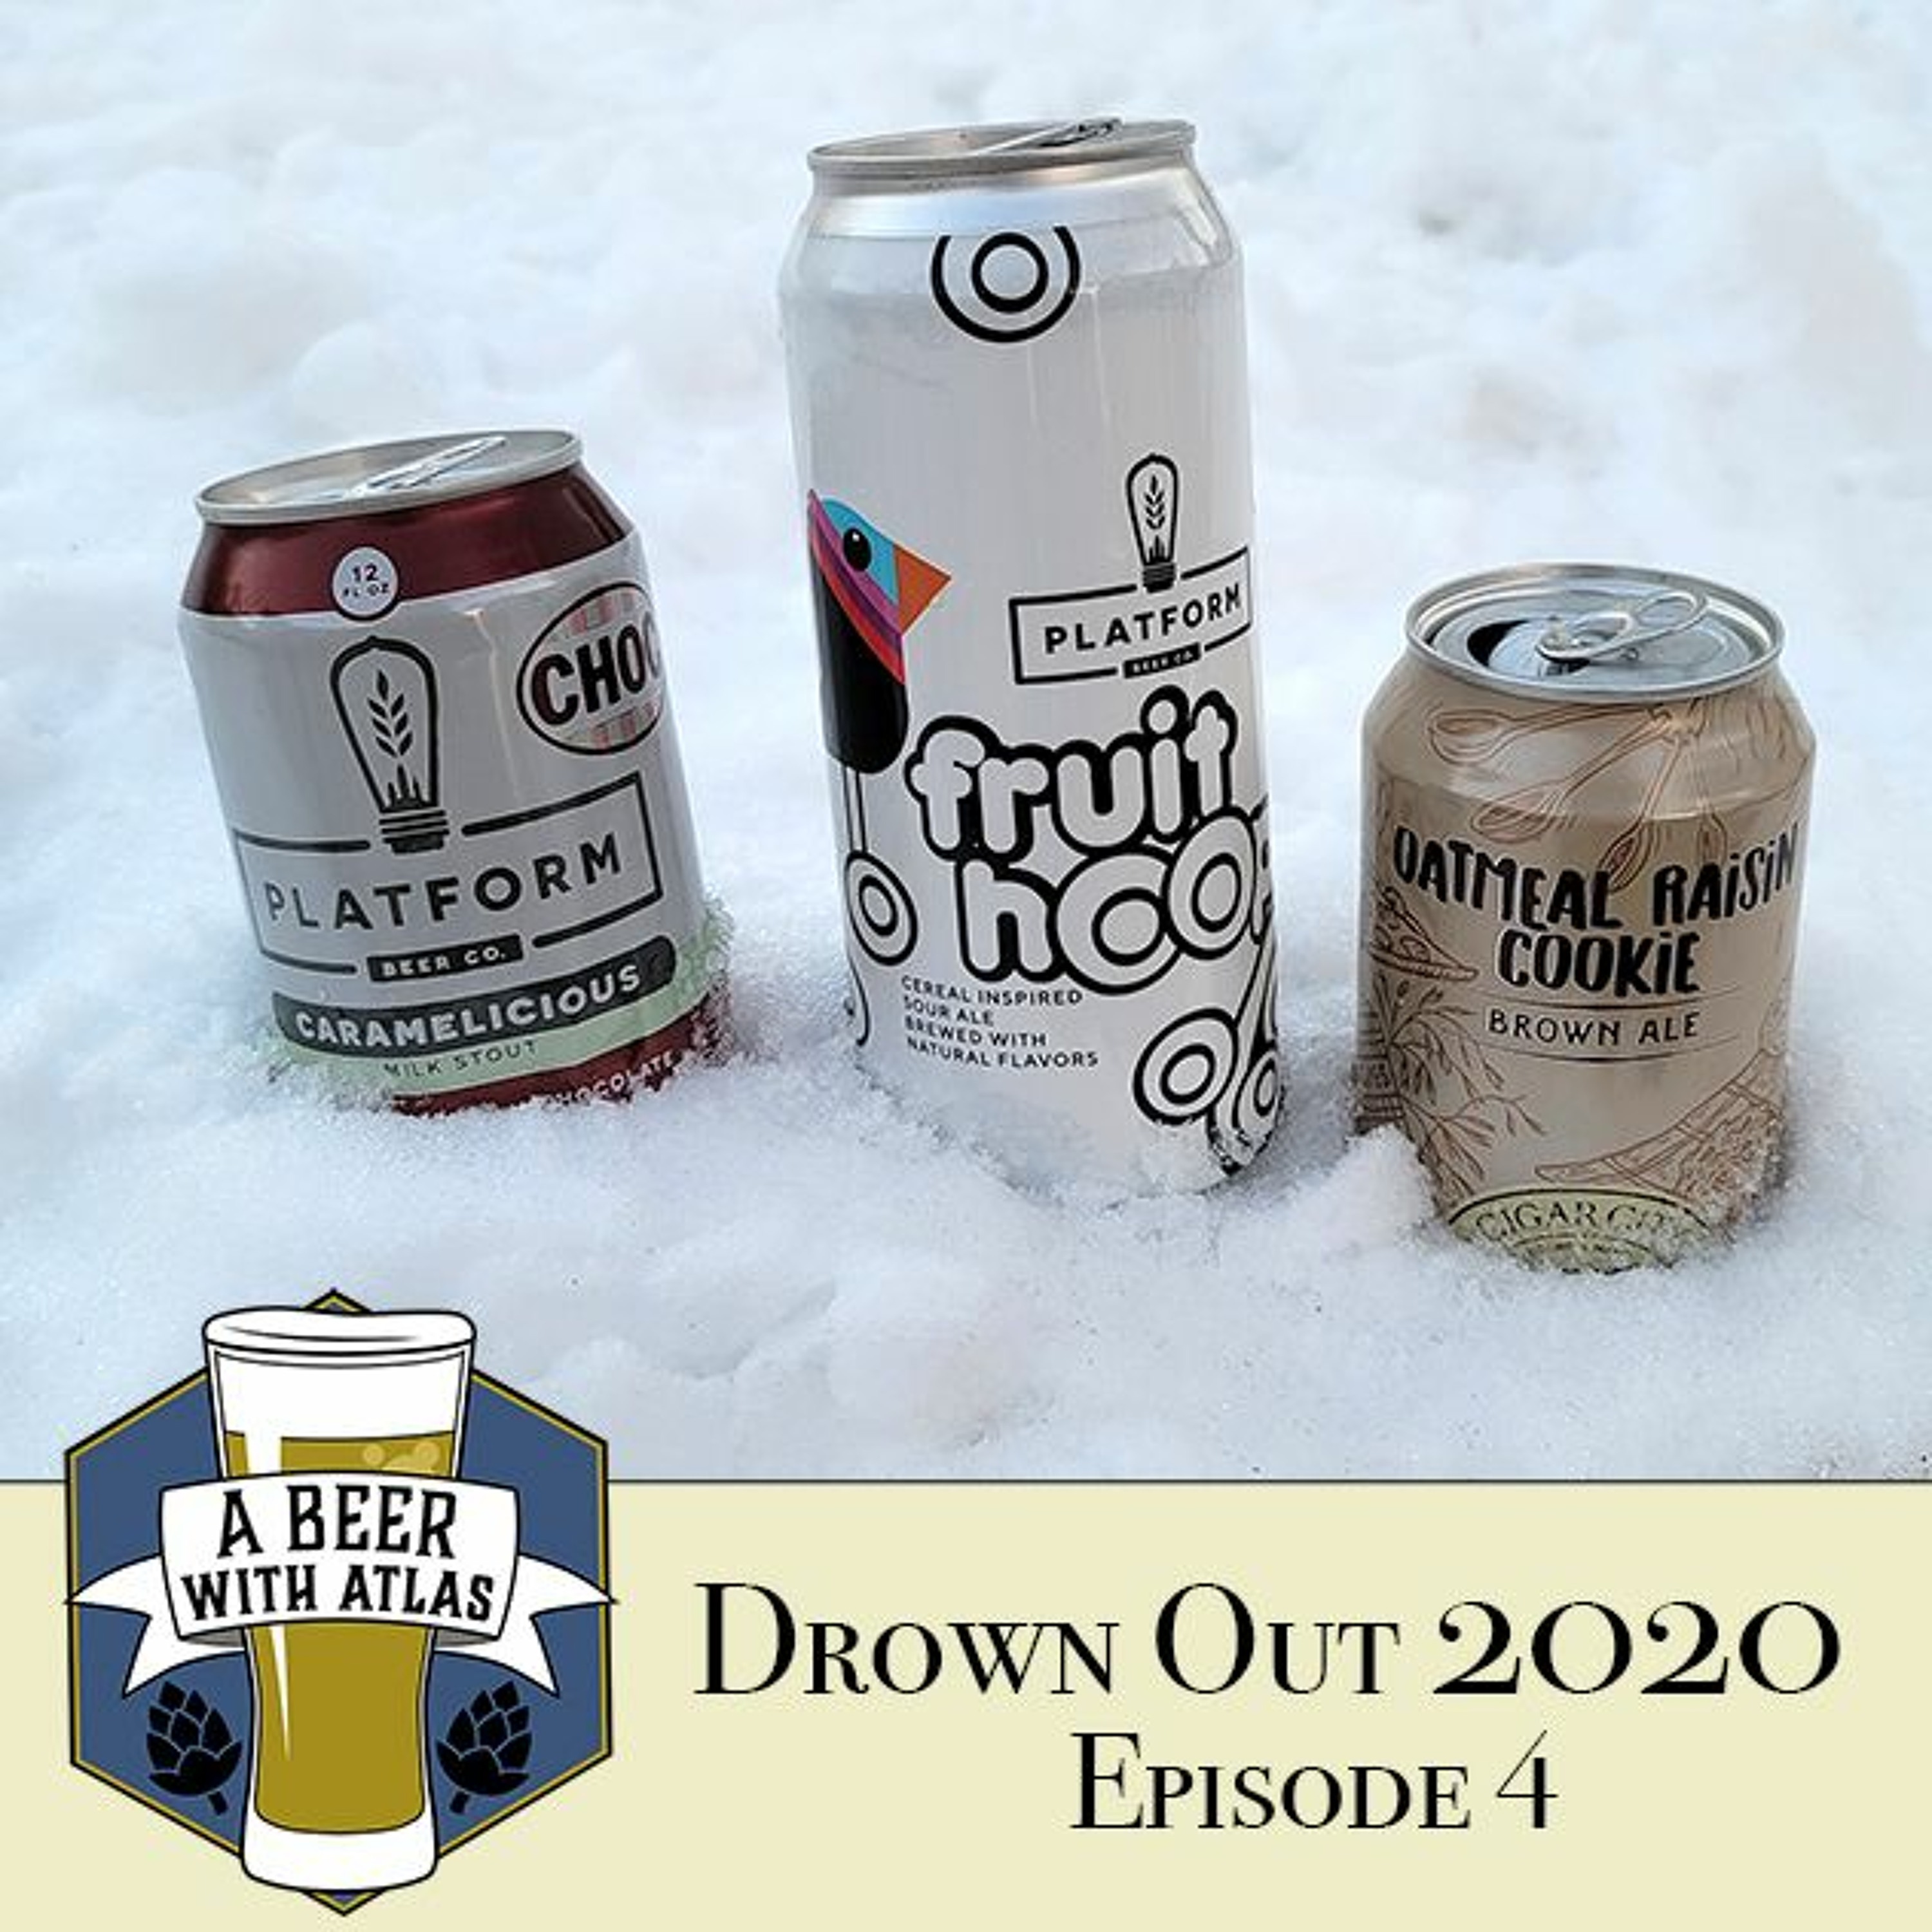 Drown Out 2020 - Ep 4 - Beer With Atlas 126 - the original travel nurse craft beer podcast